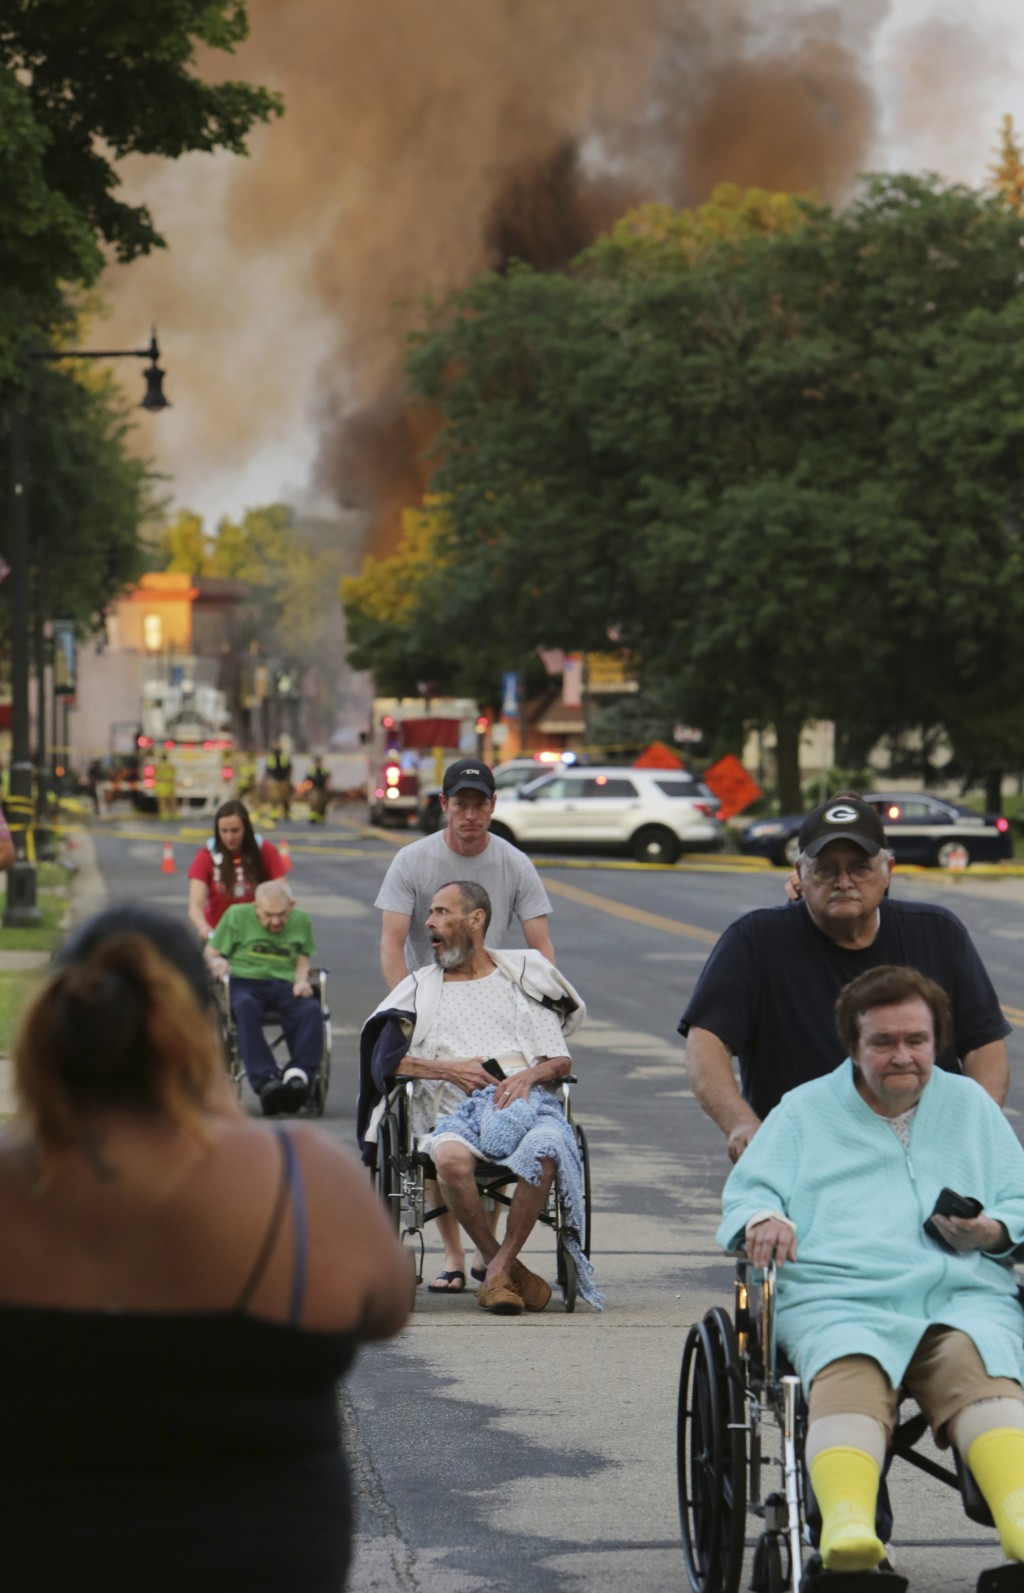 Residents are relocated from a nearby home after an explosion in downtown Sun Prairie, Wis., Tuesday, July 10, 2018. The explosion rocked the downtown